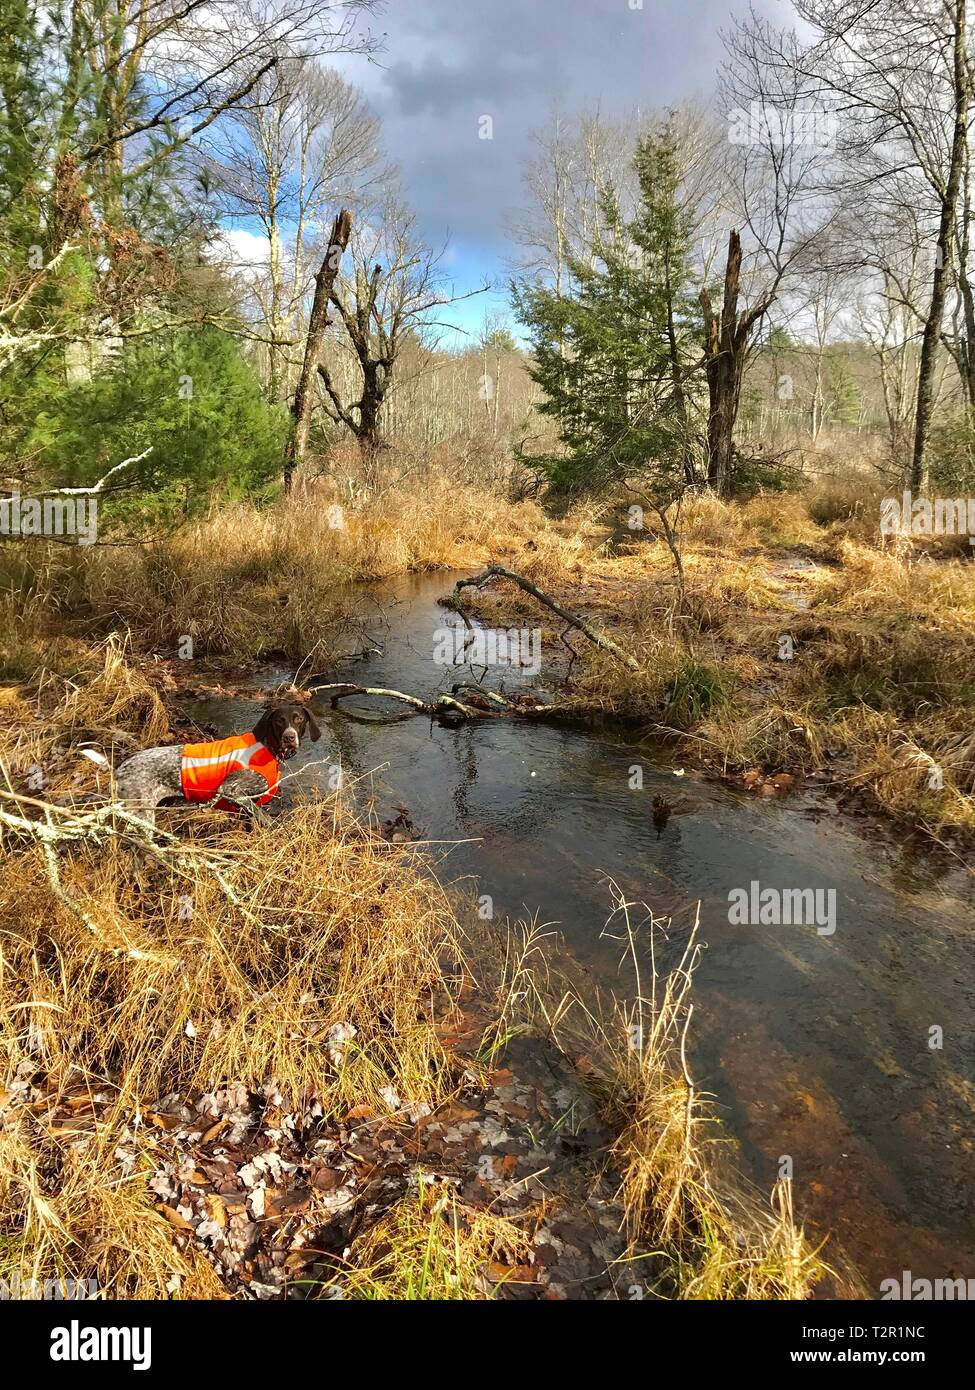 German Shorthaired Pointer hunting for birds in woods - Stock Image